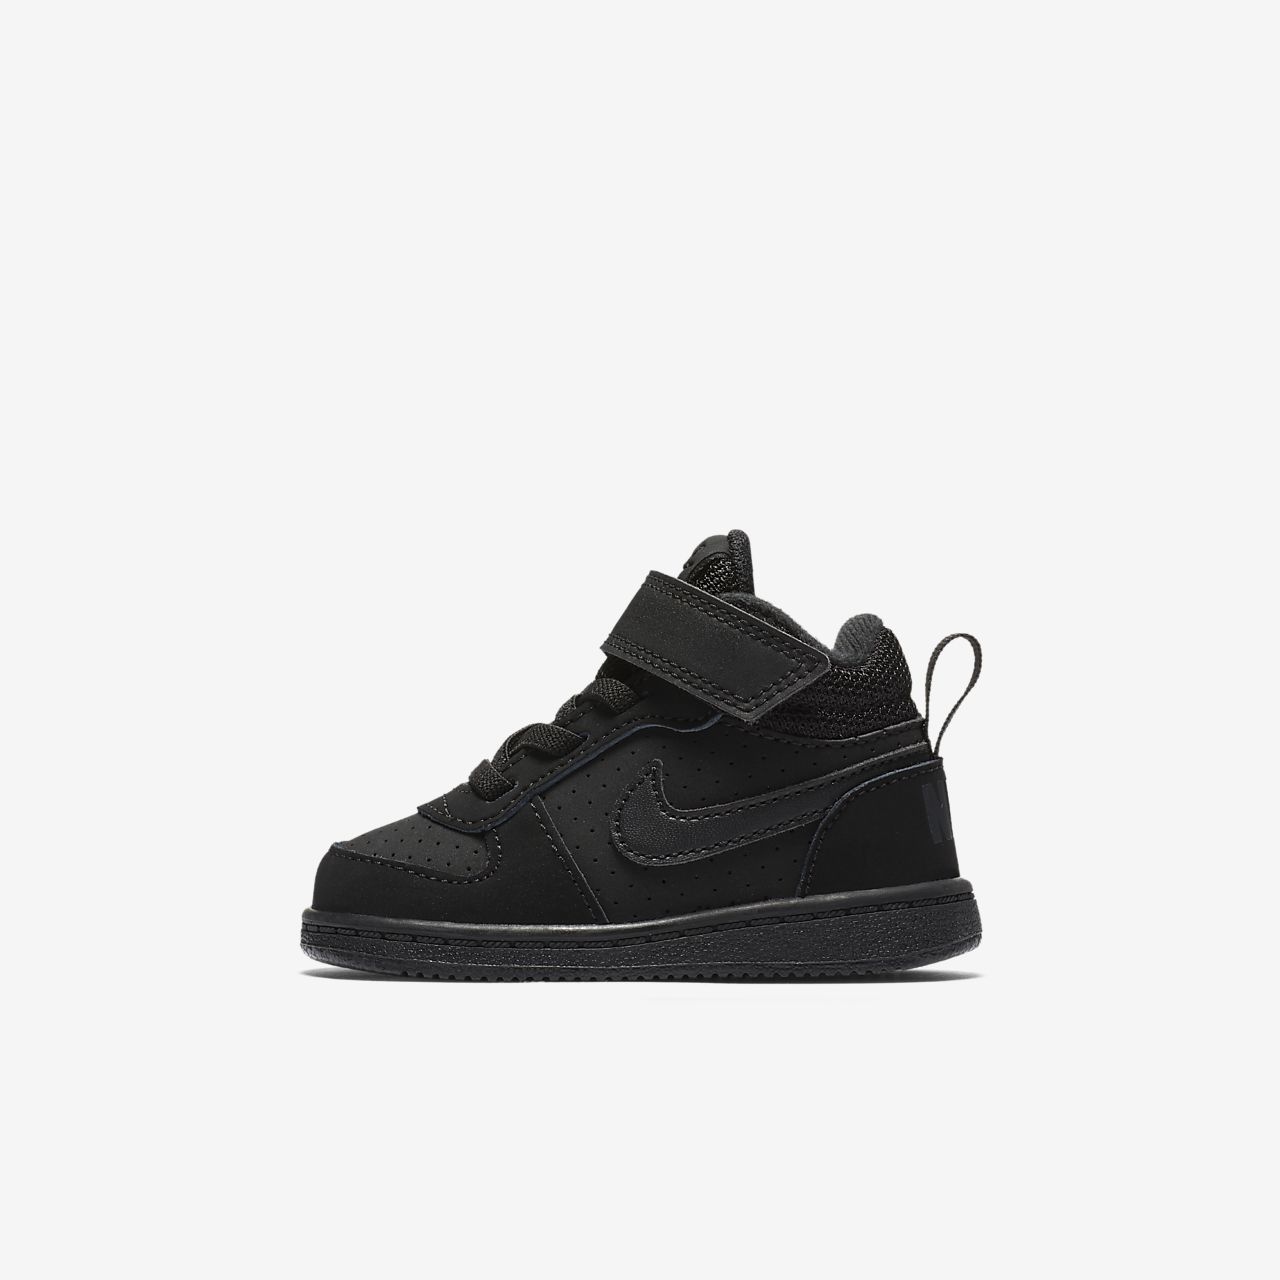 NikeCourt Borough Mid Zapatillas - Bebé e infantil